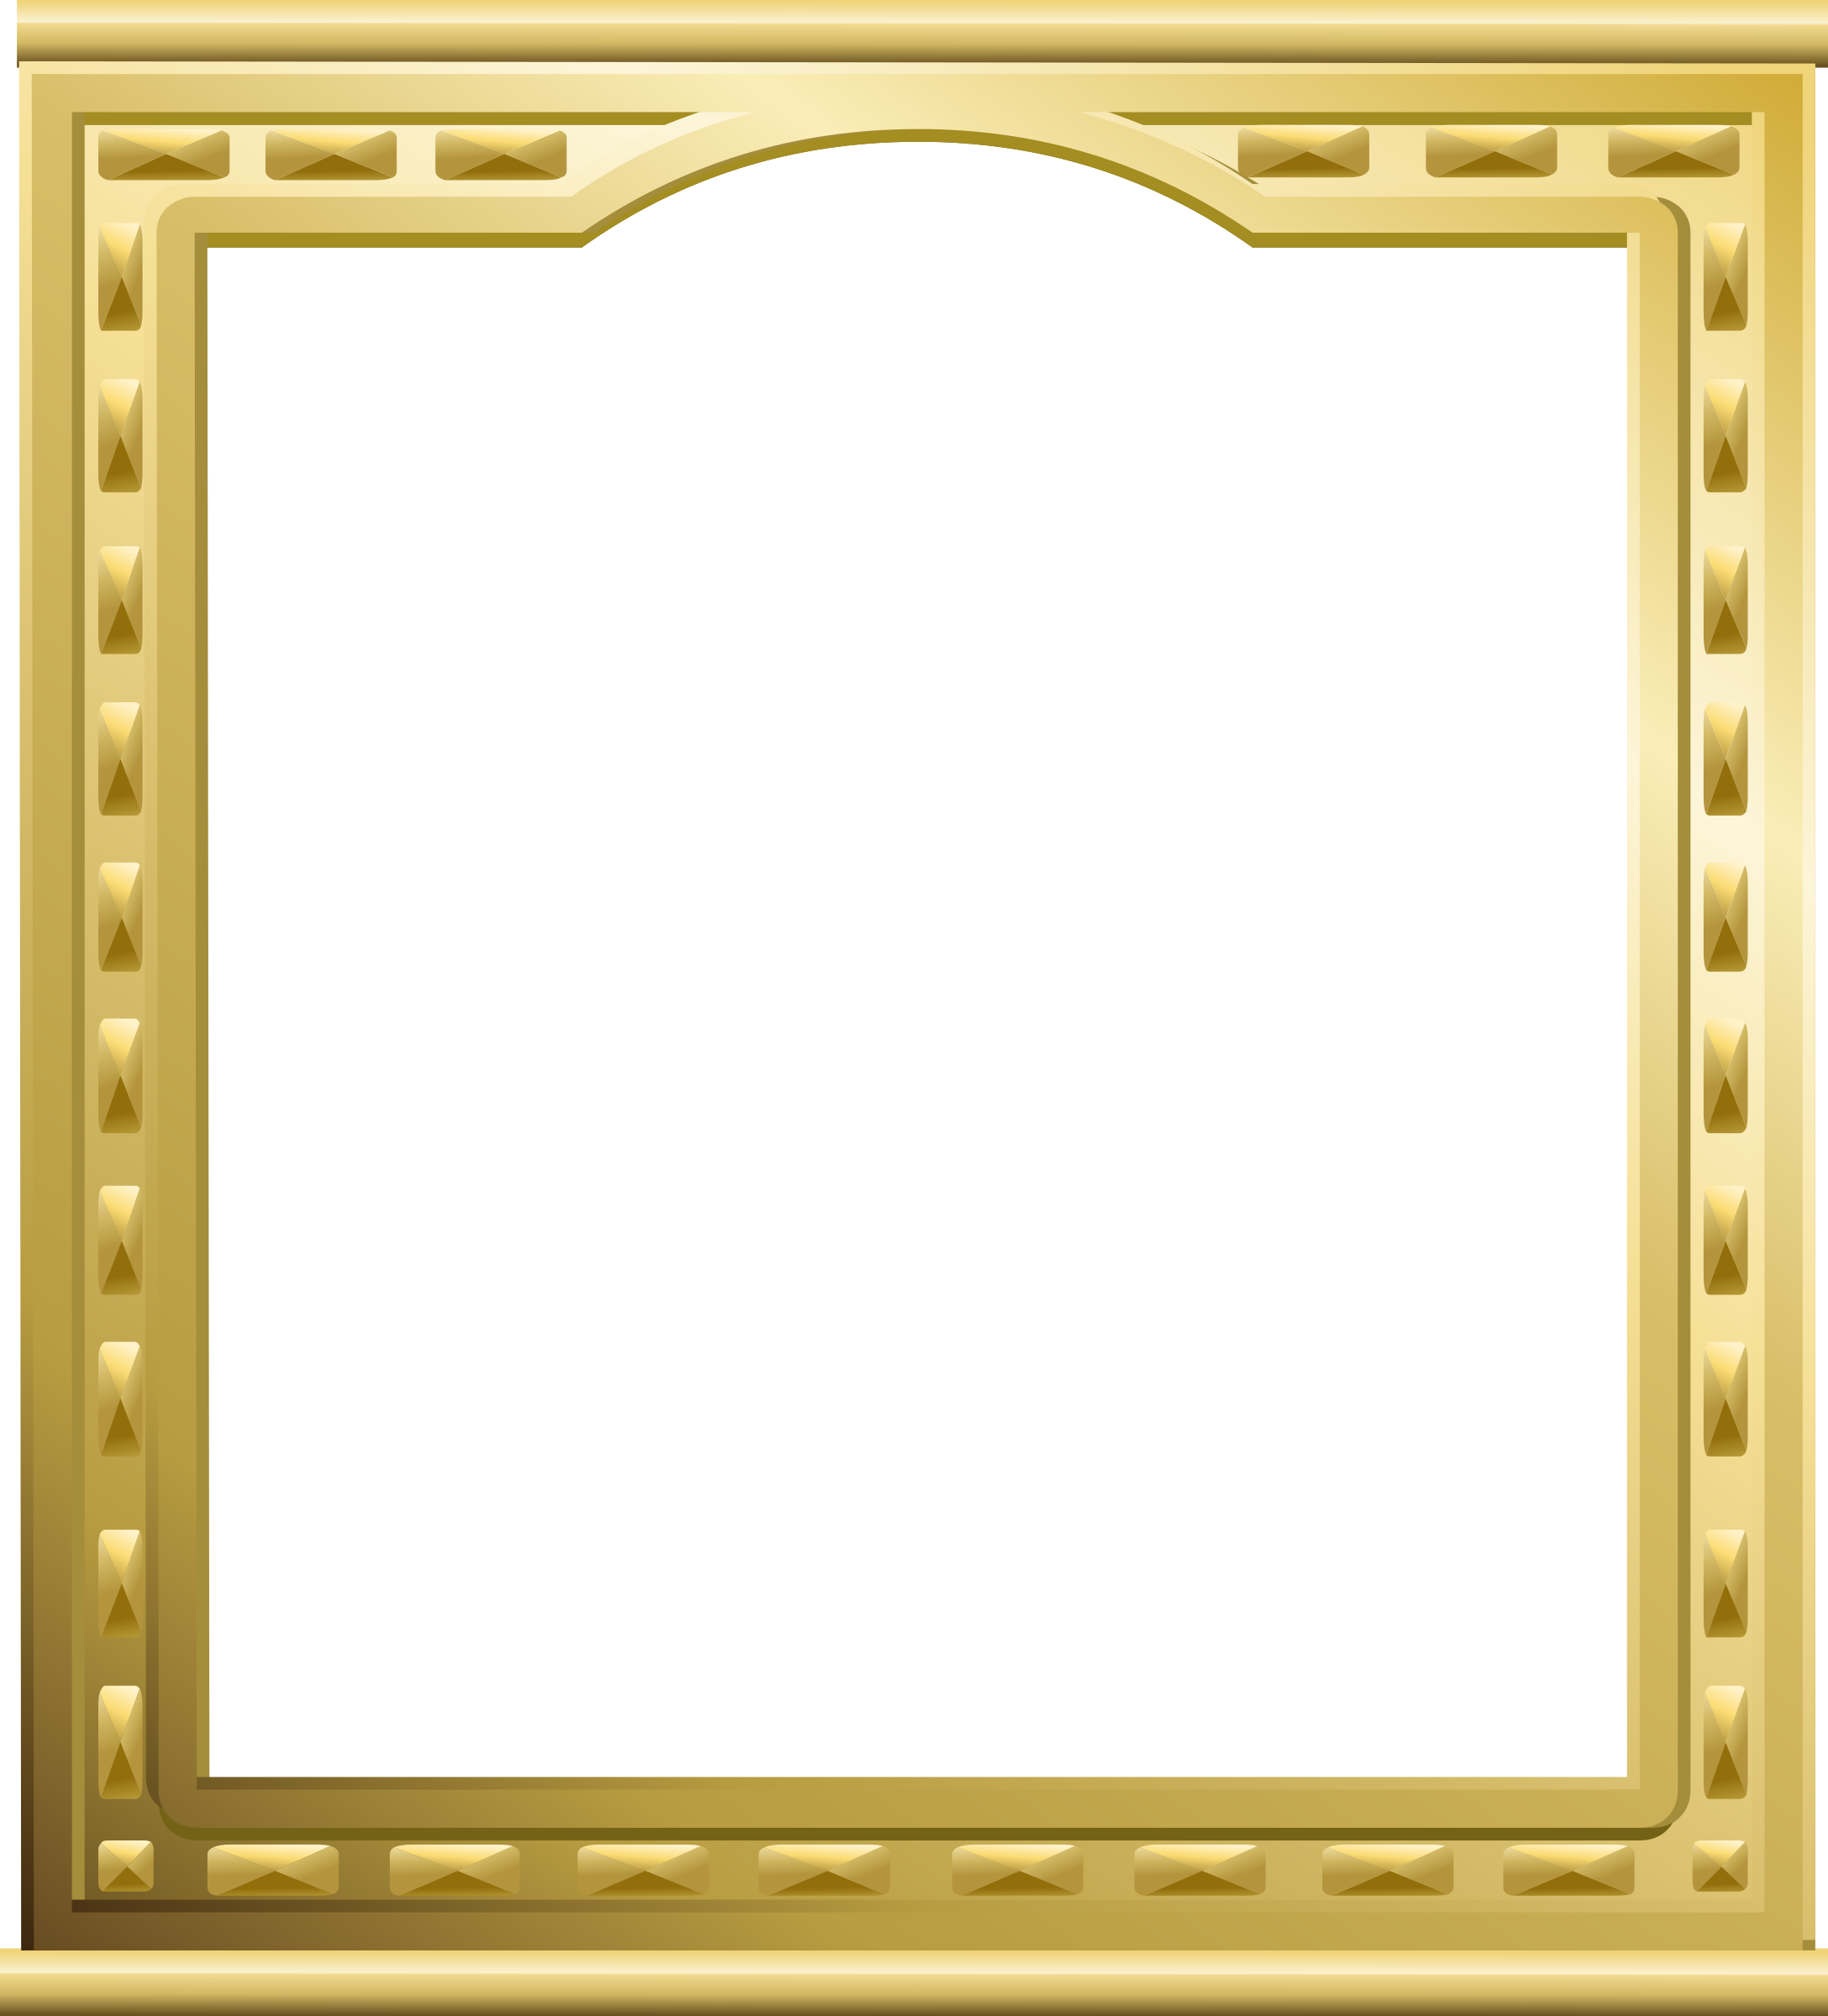 Clipart golden big image. Gold picture frame png